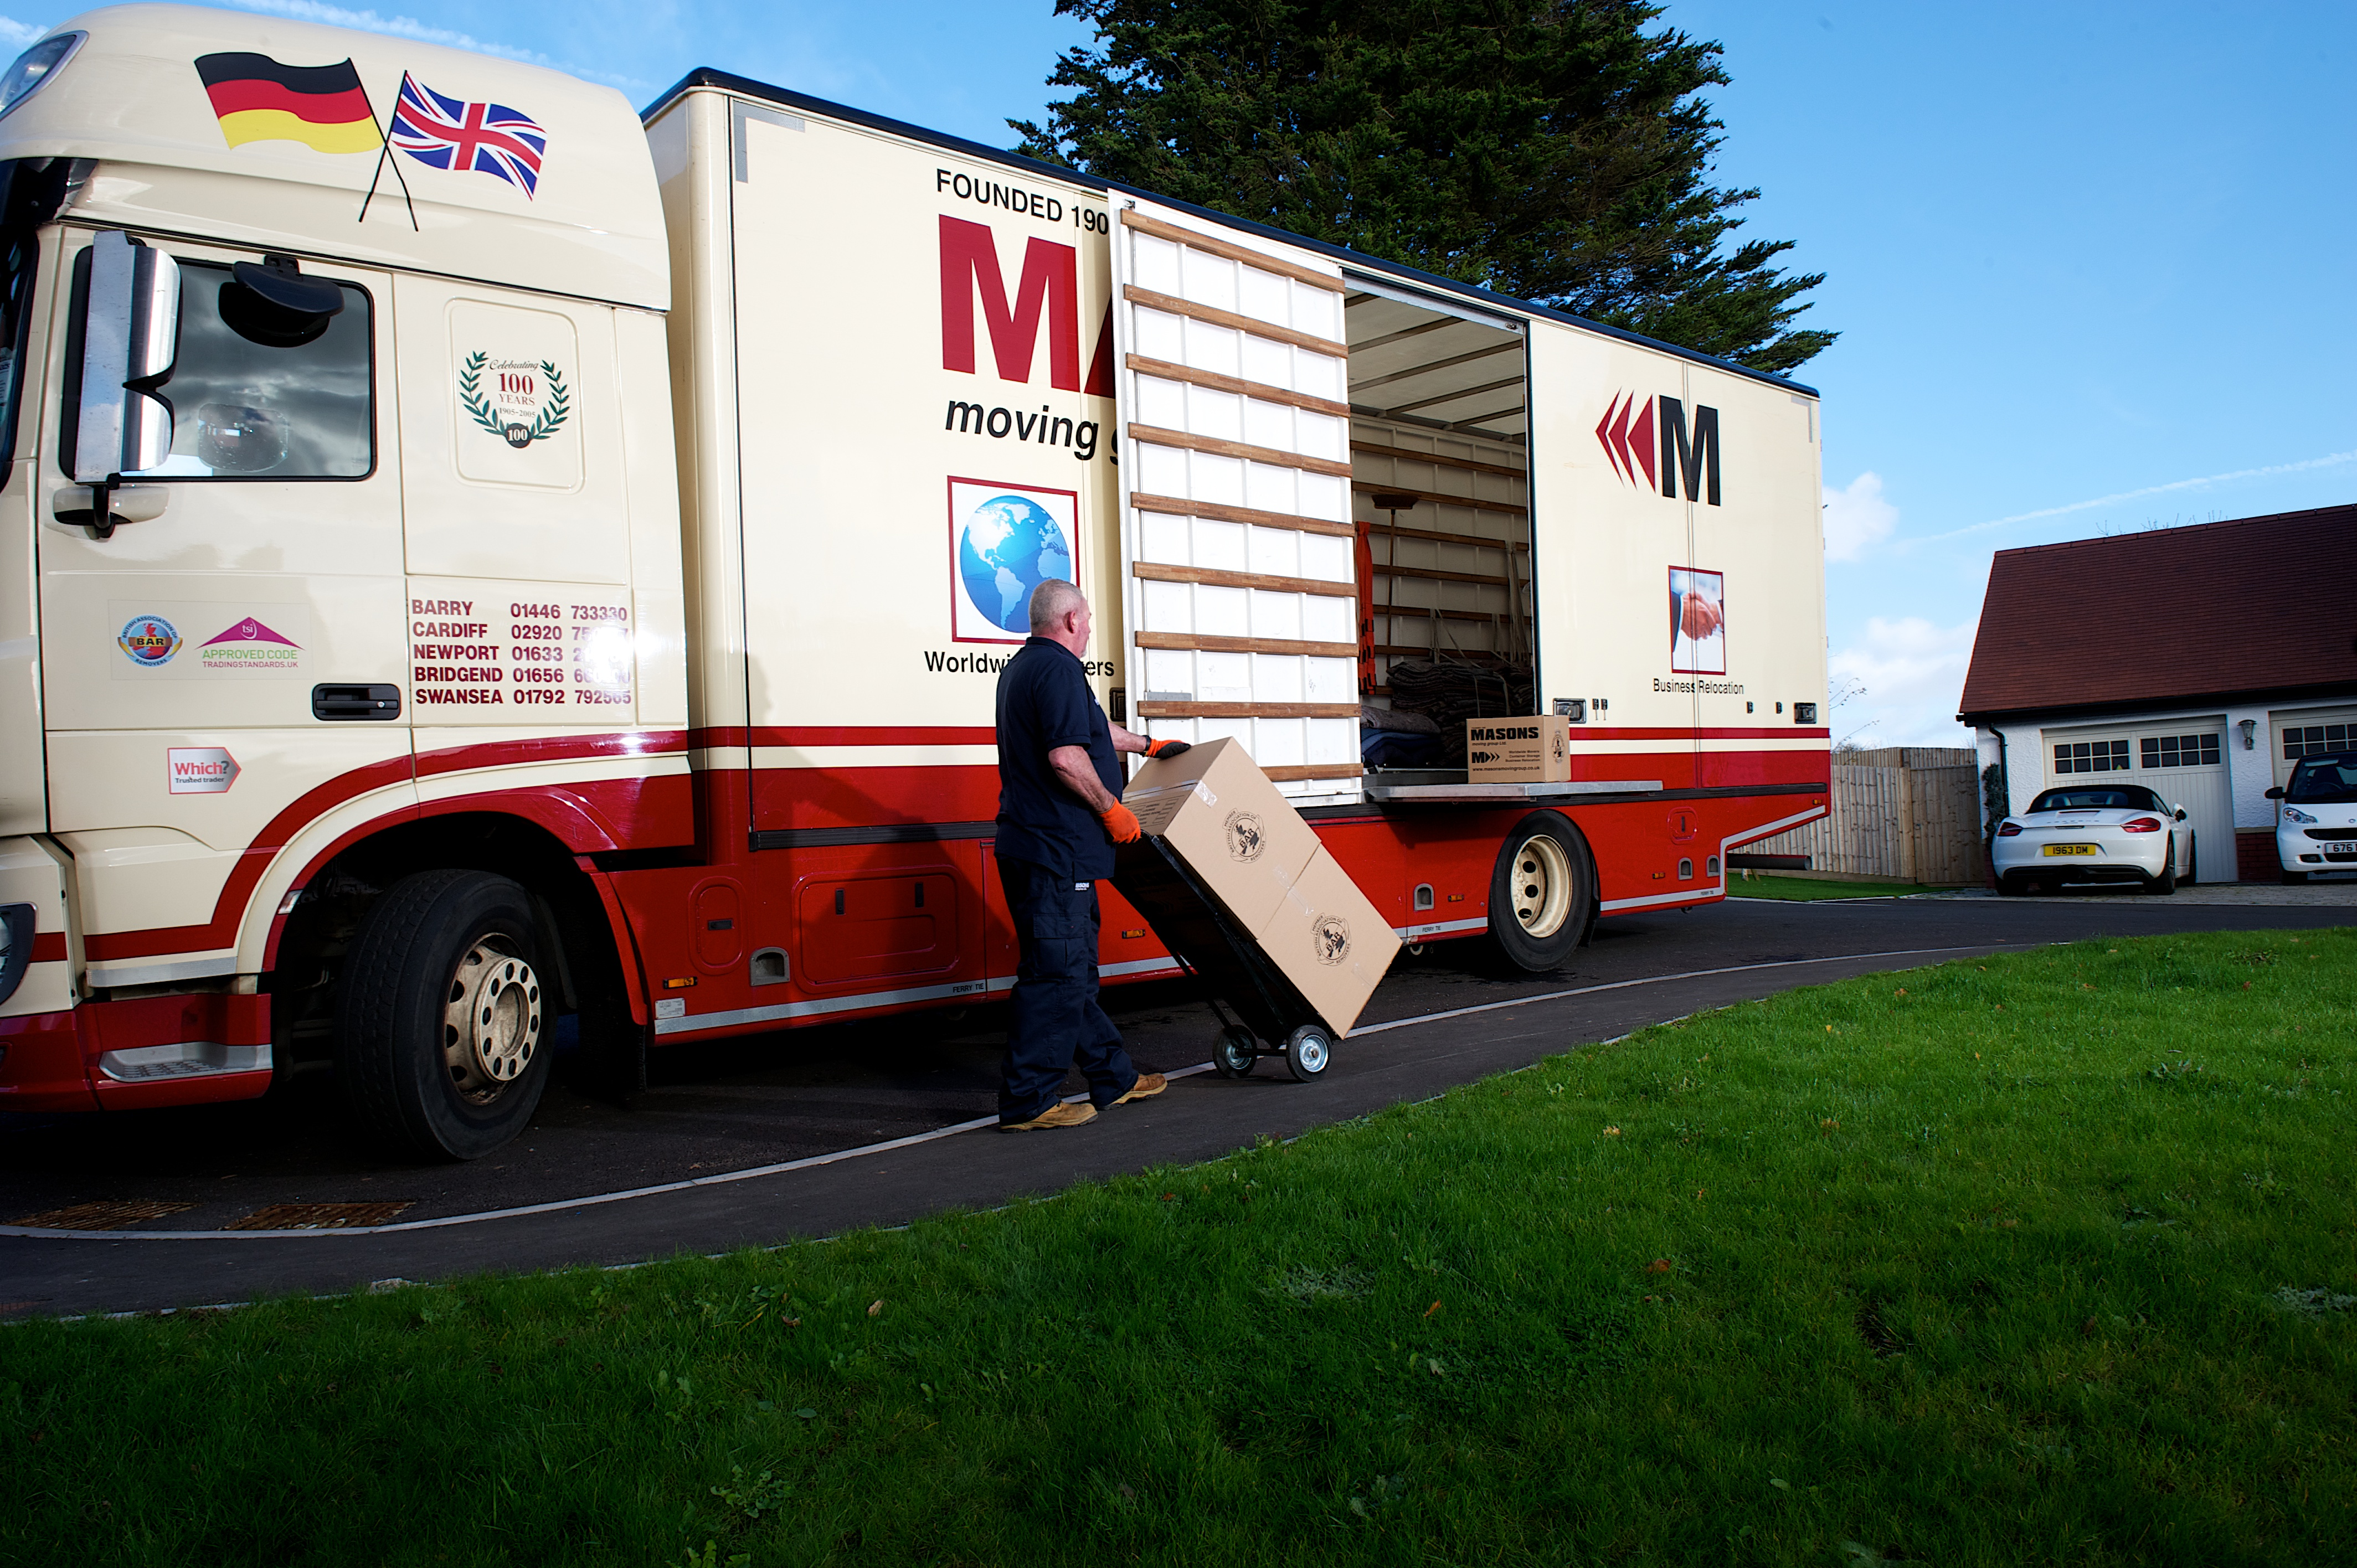 Hgv class 1 driver jobs north west youtube.